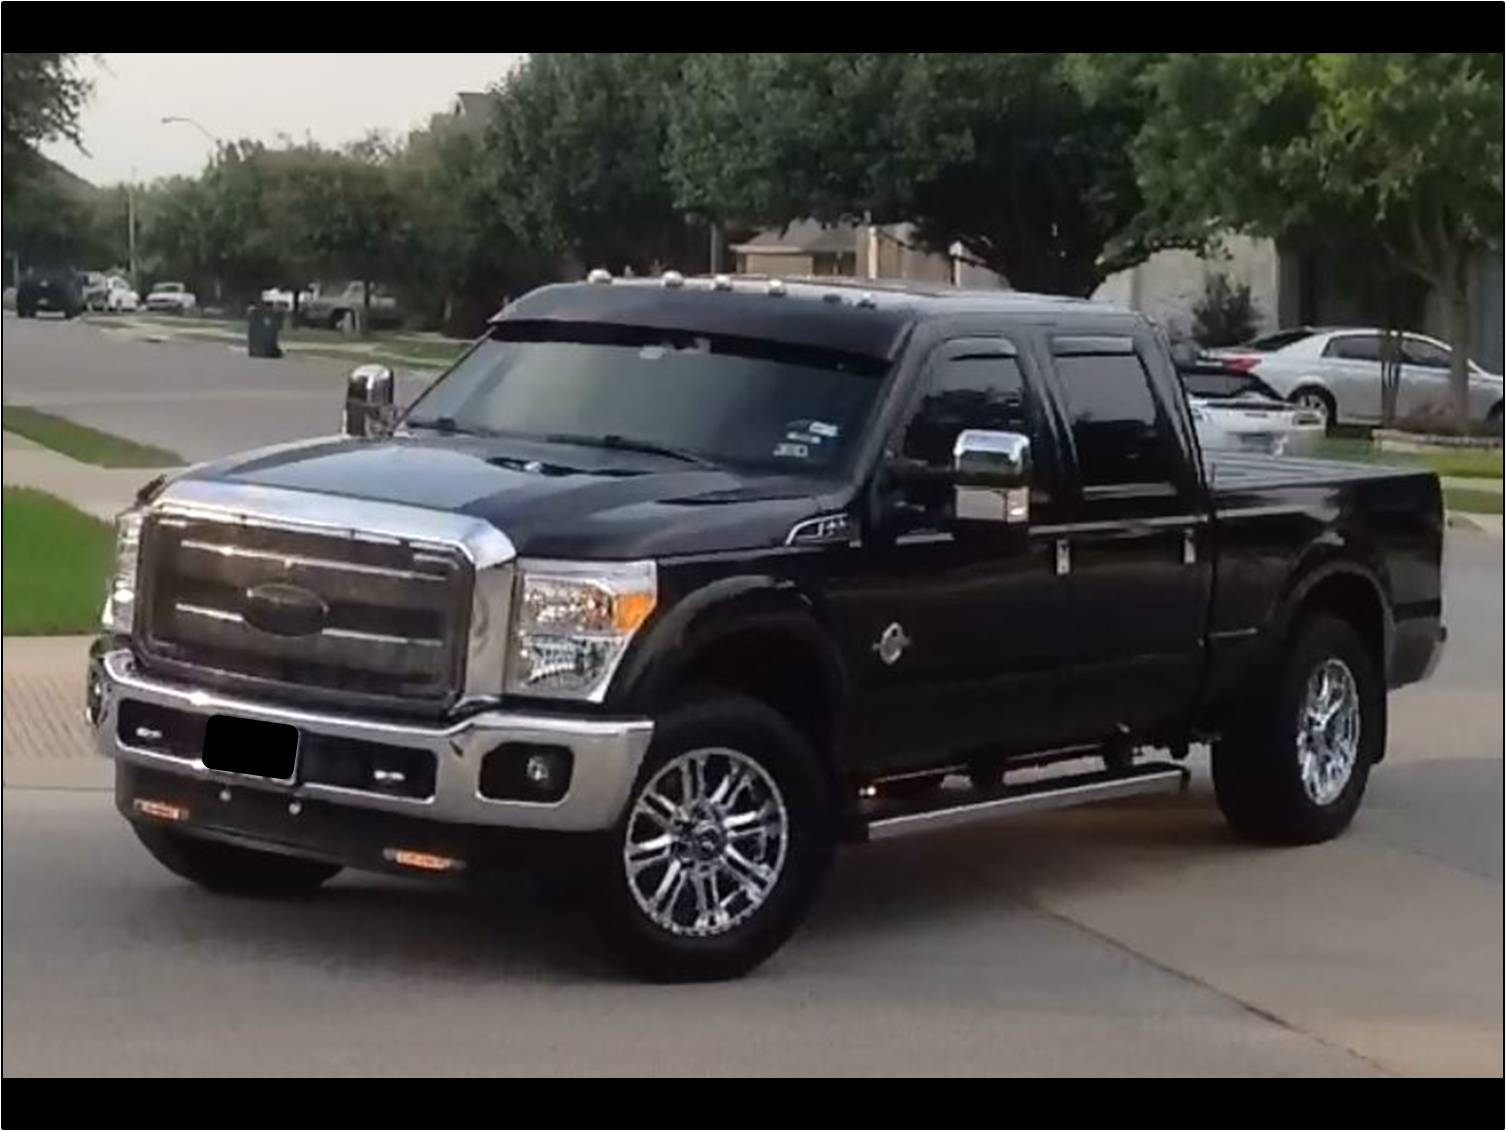 Ford Corpus Christi >> Looking 4 pics of 295/60/20 Nitto Trail on stock SD - Page 5 - Ford Truck Enthusiasts Forums